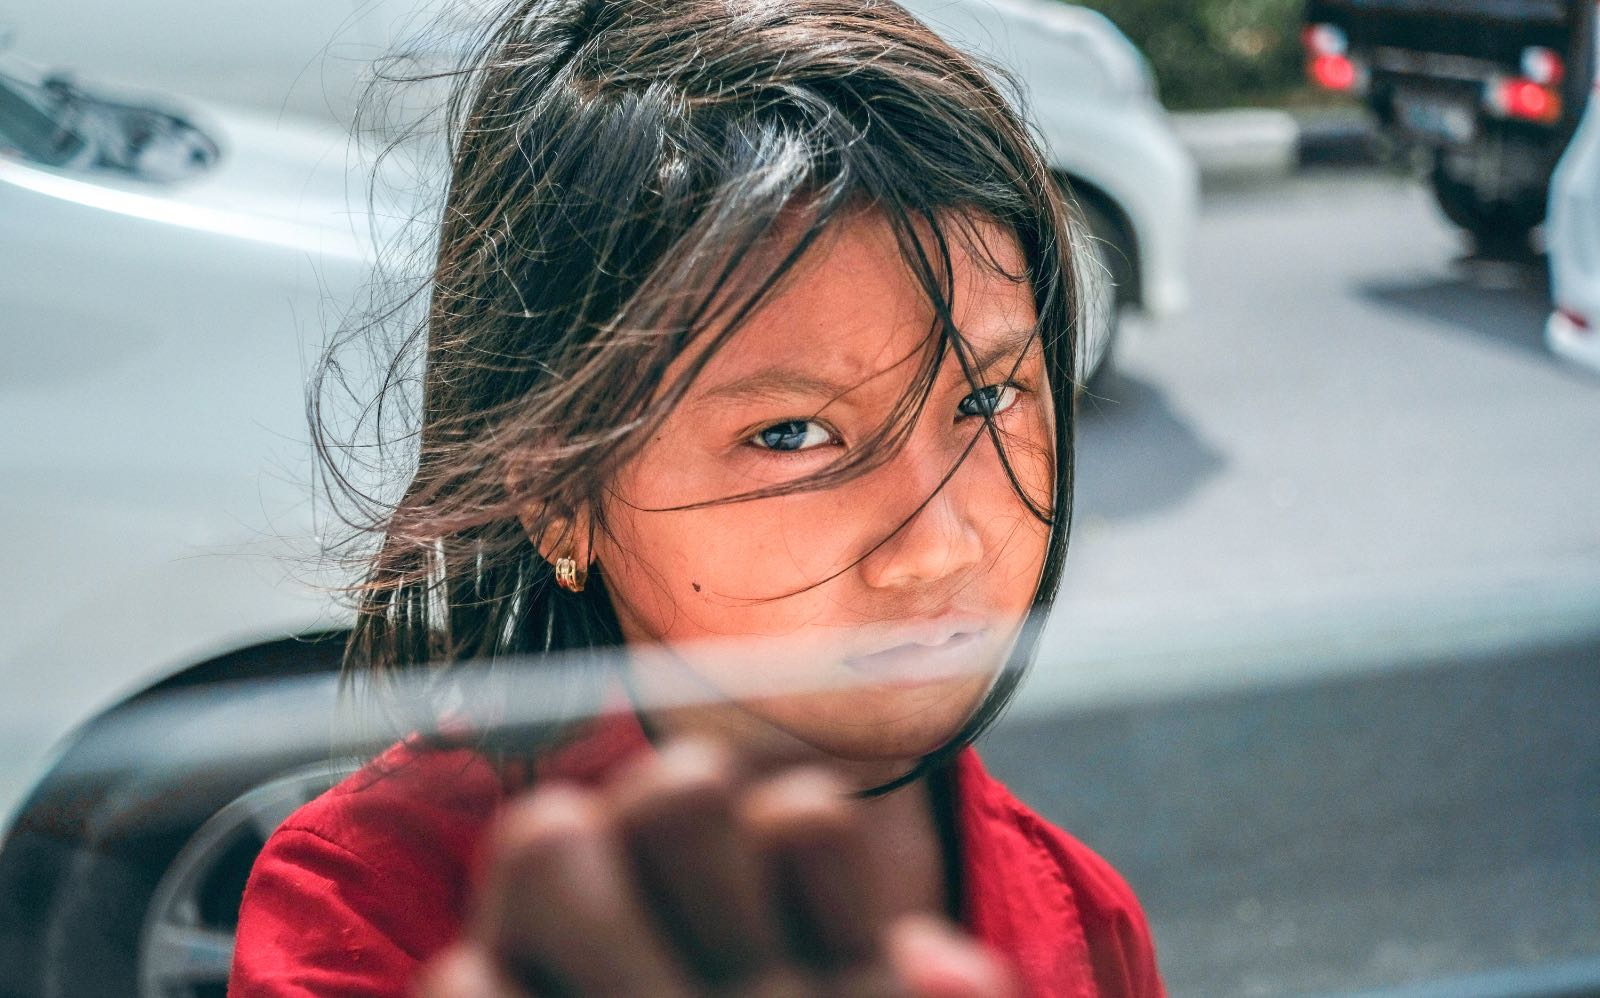 young girl look Migrants and Refugees